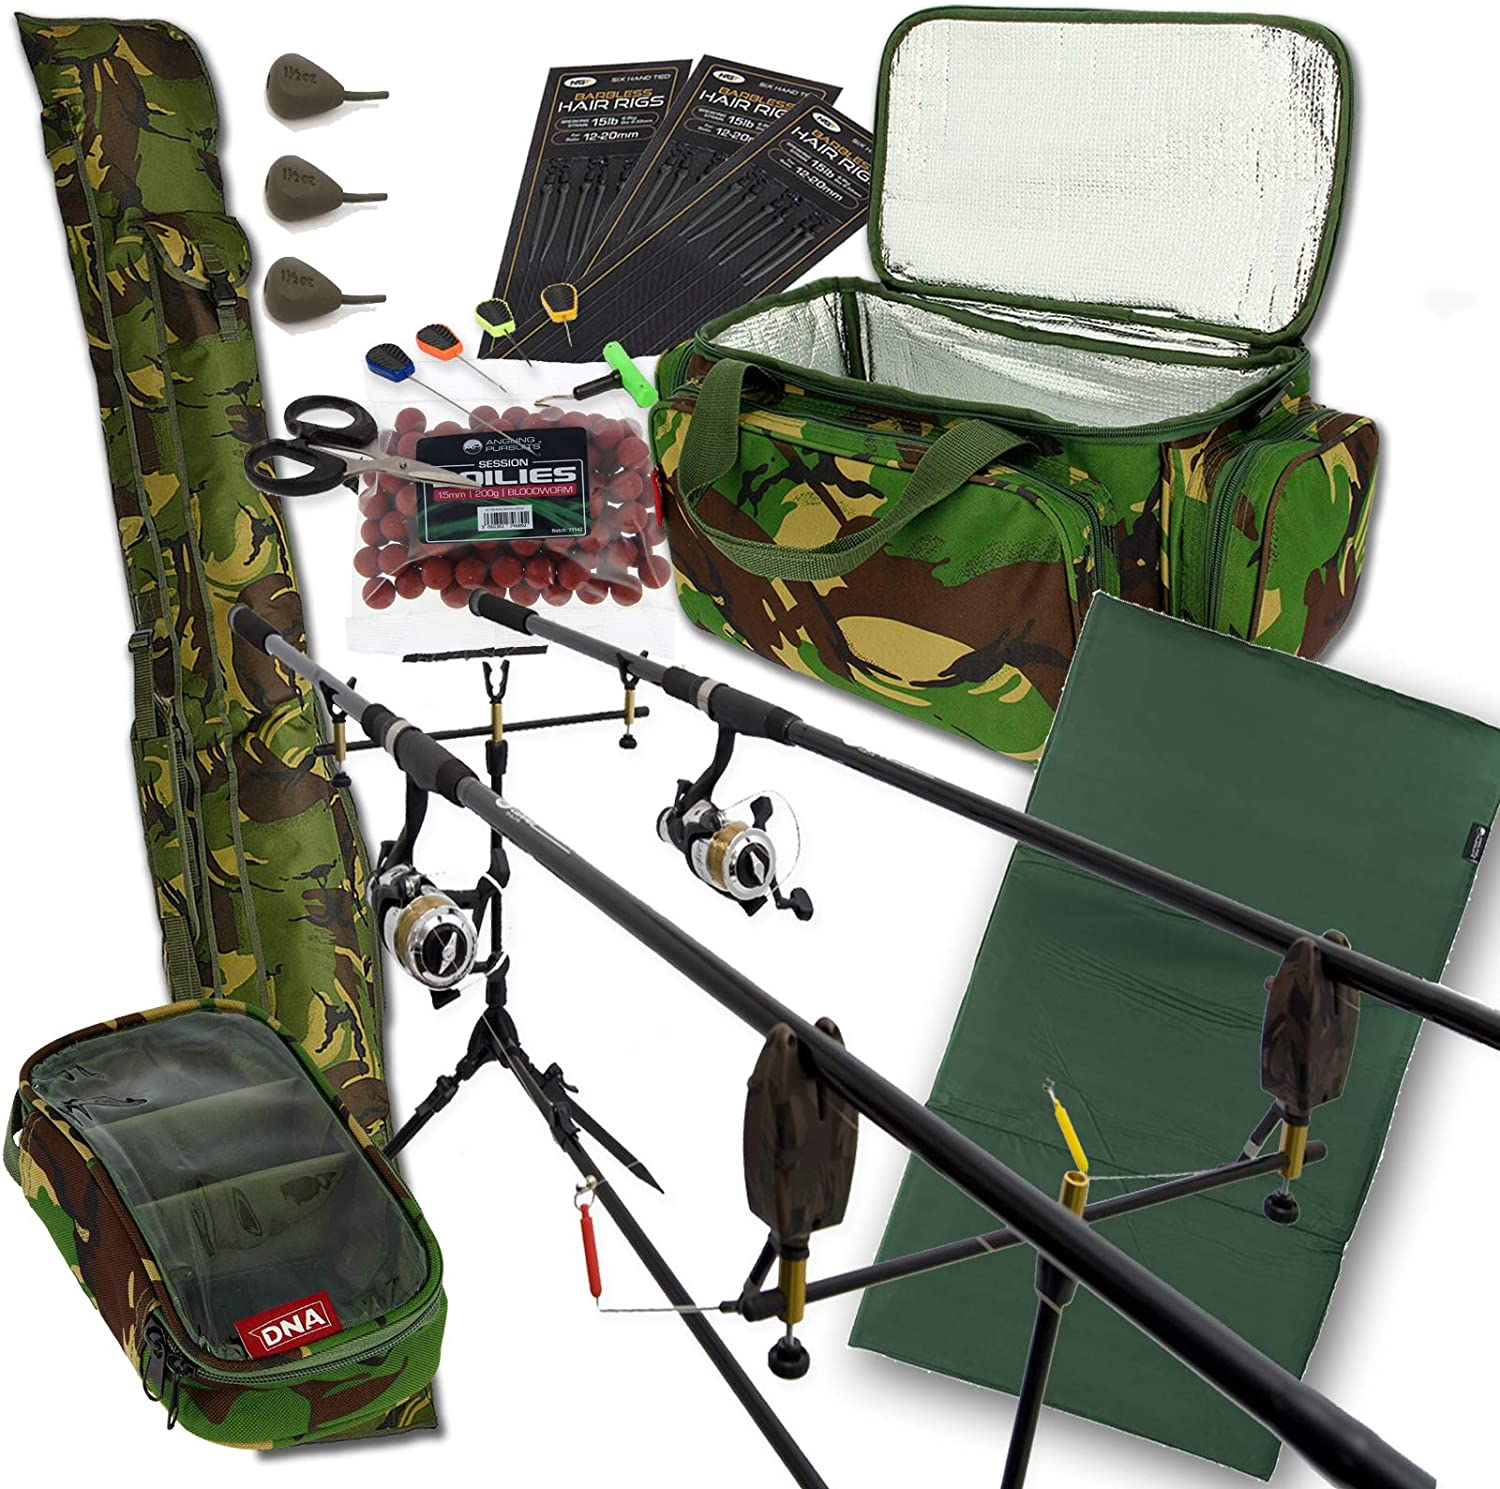 Complete Carp Fishing Set Up 3 Rods Reels Alarms Luggage Tackle Holdall Bait